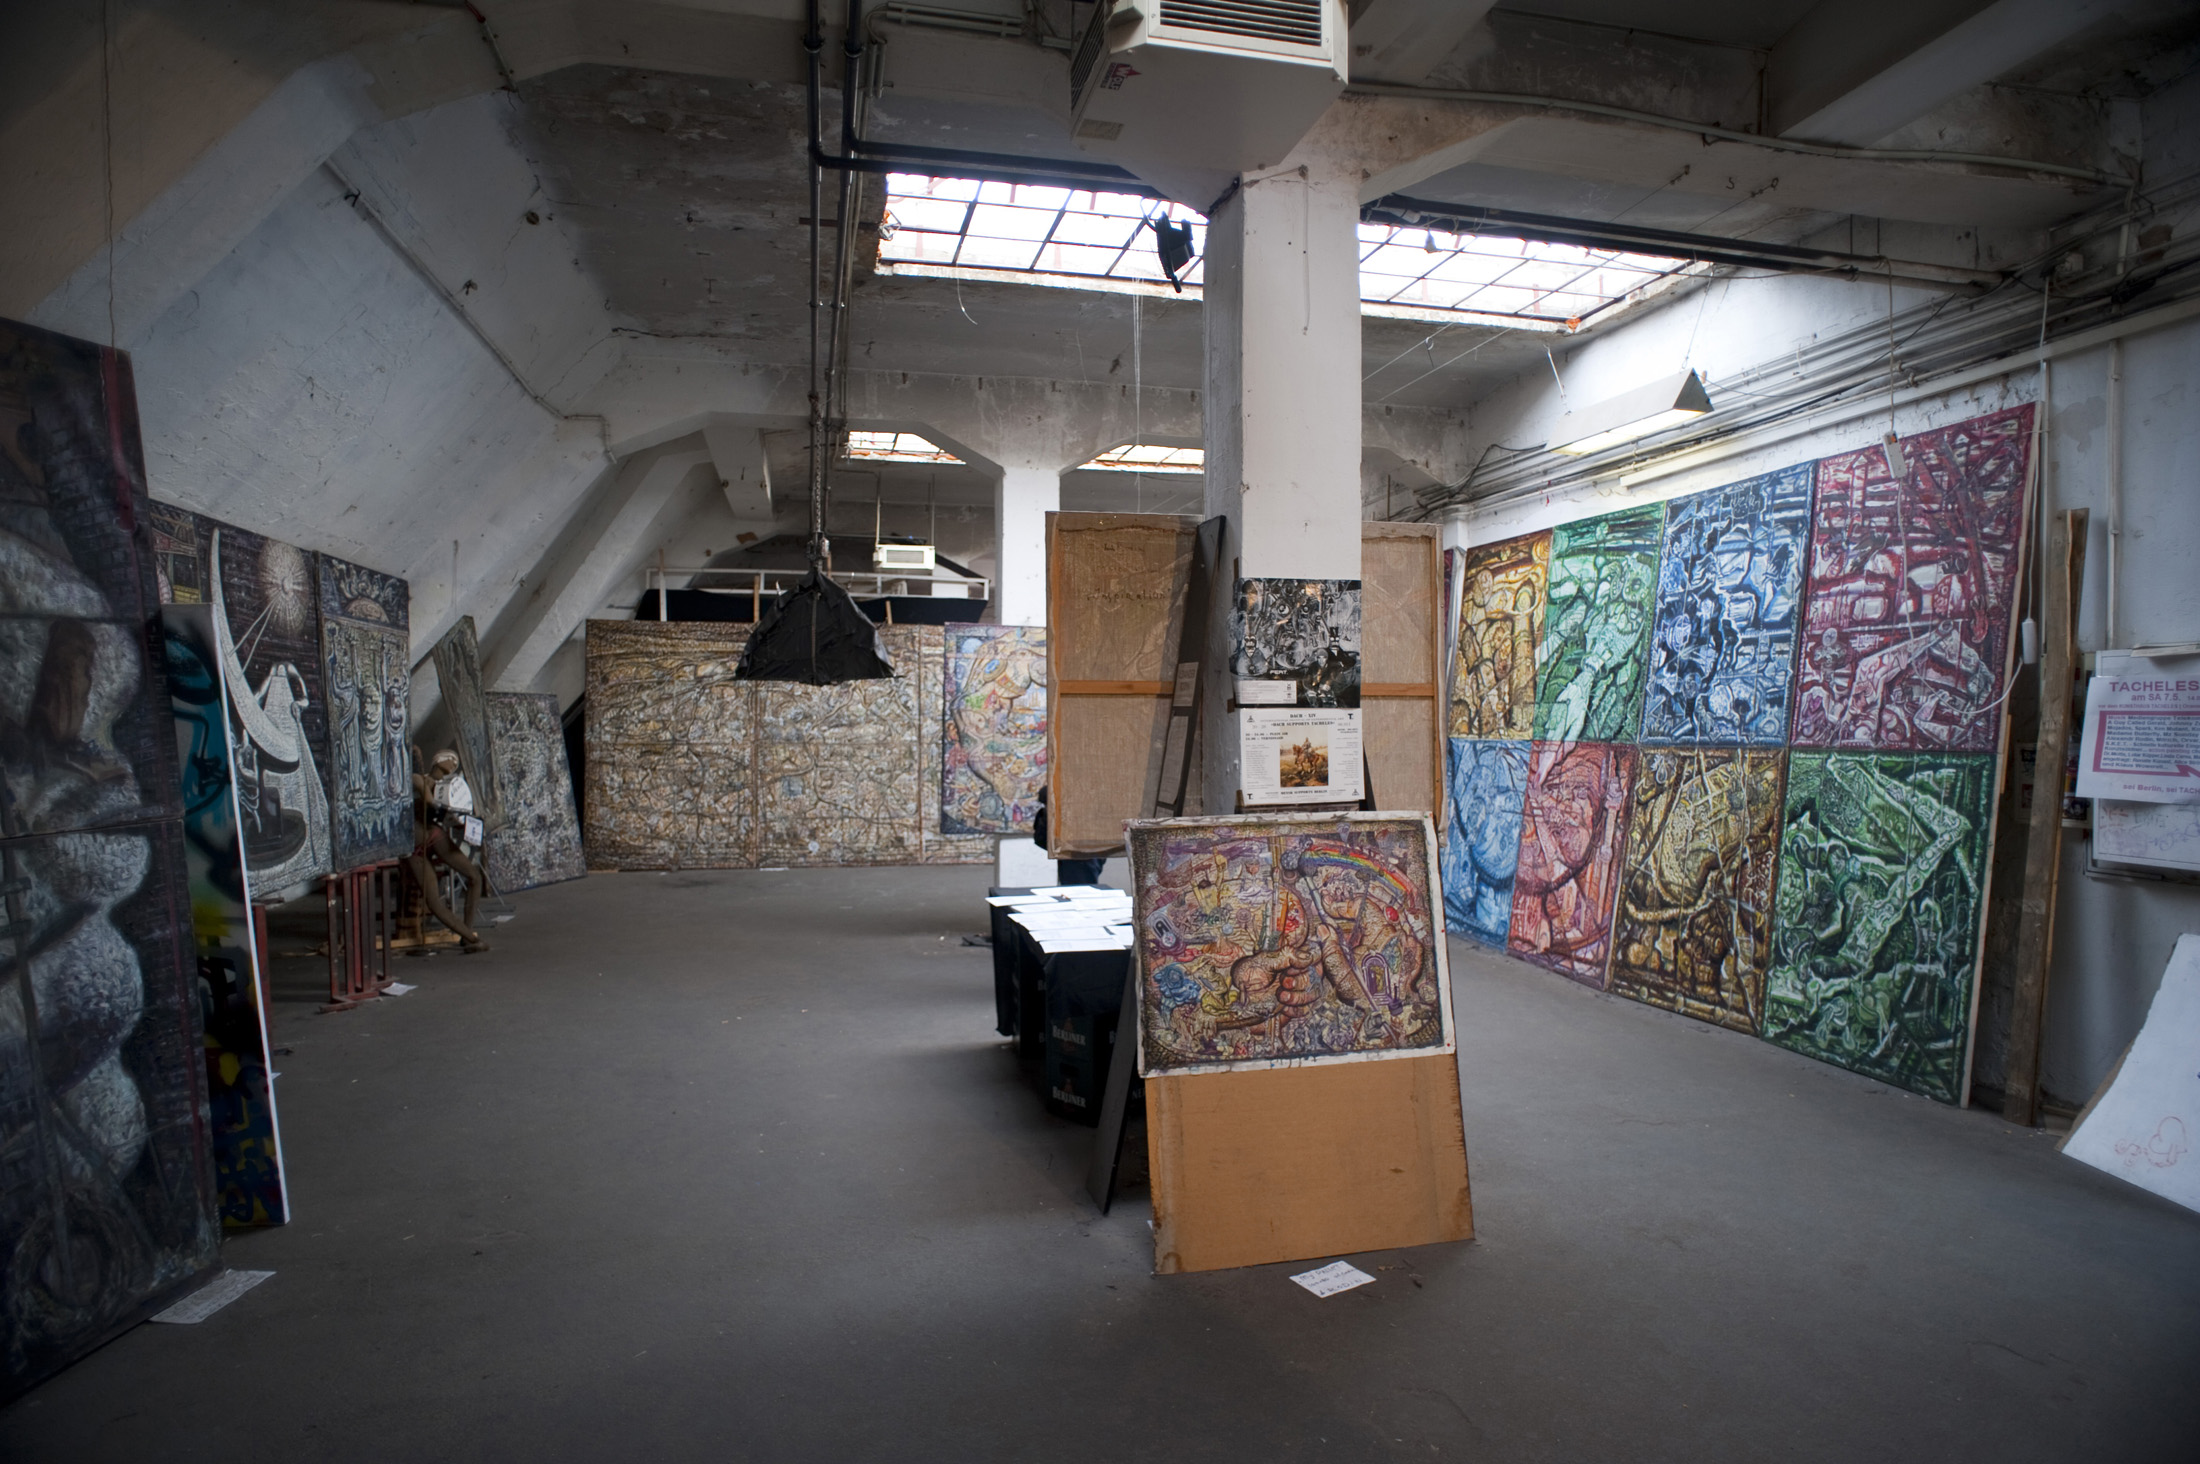 contemporary art in a derelict building, the Kunsthaus Tacheles art squat